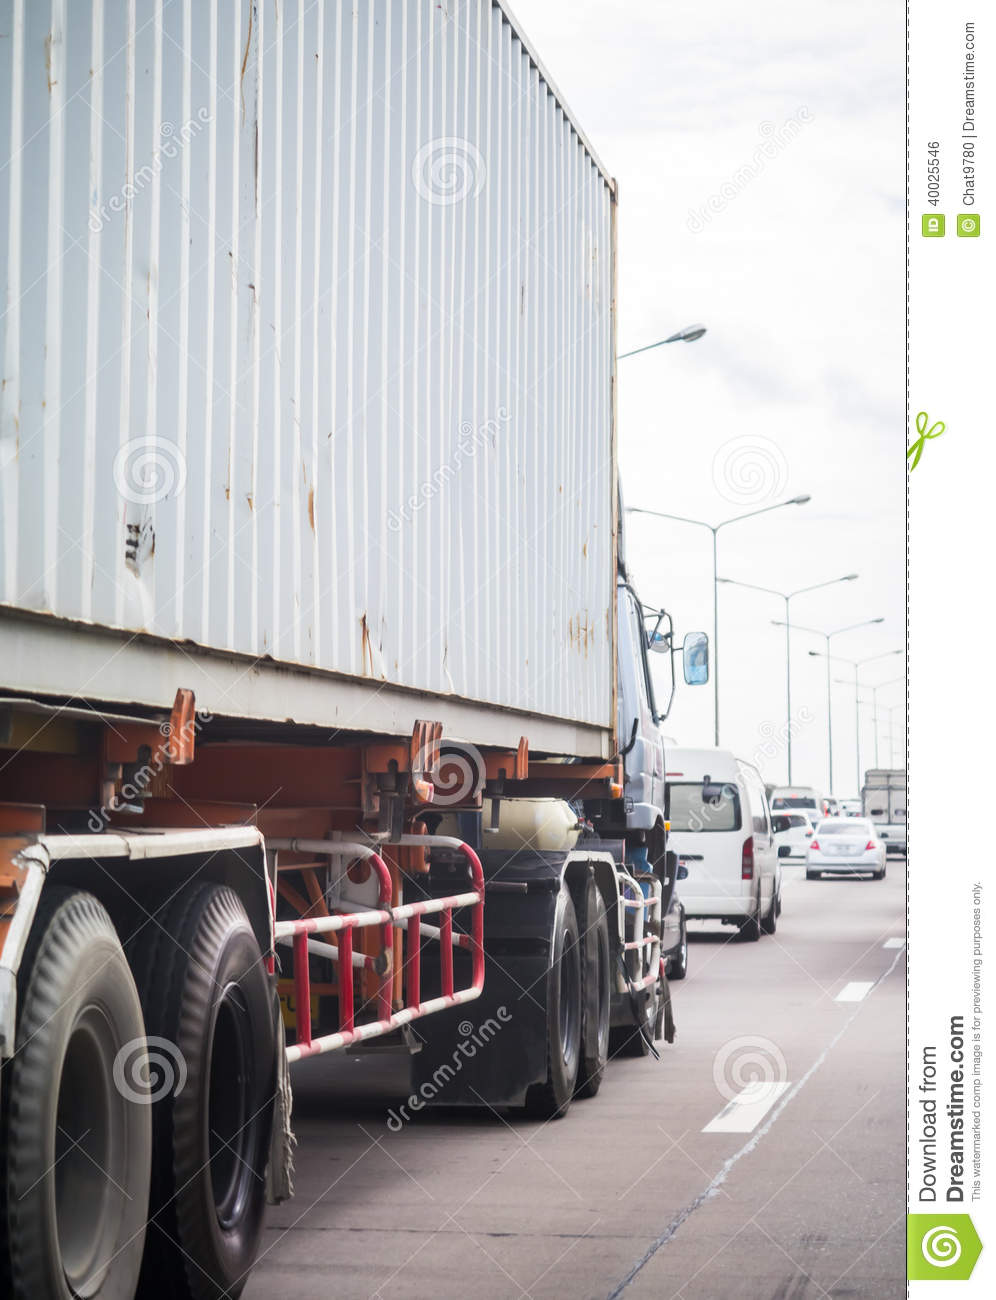 Truck With Container On The Road Stock Photo - Image: 40025546